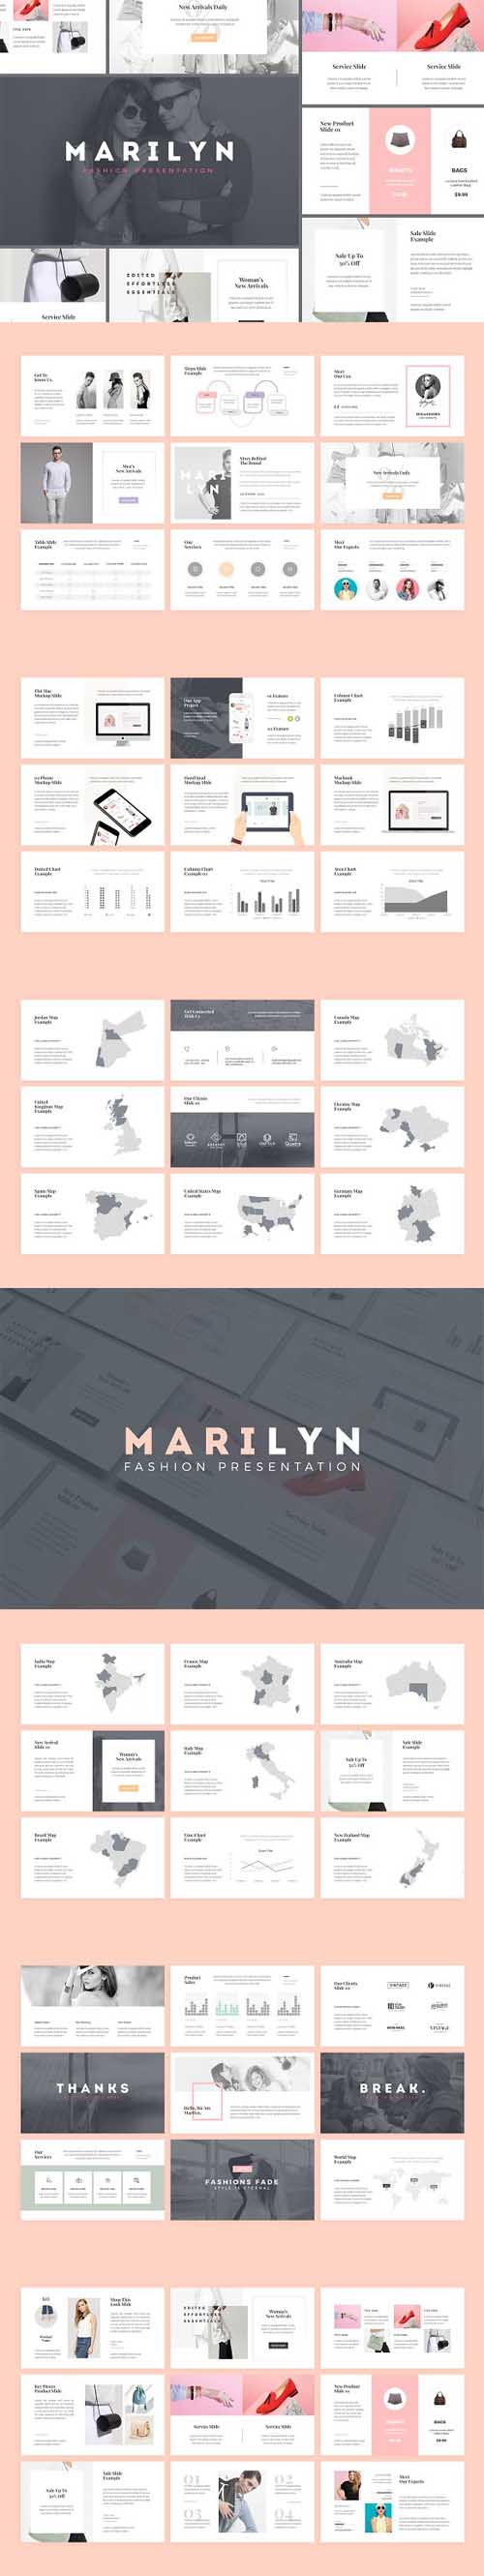 M A R I L Y N - Fashion Presentation